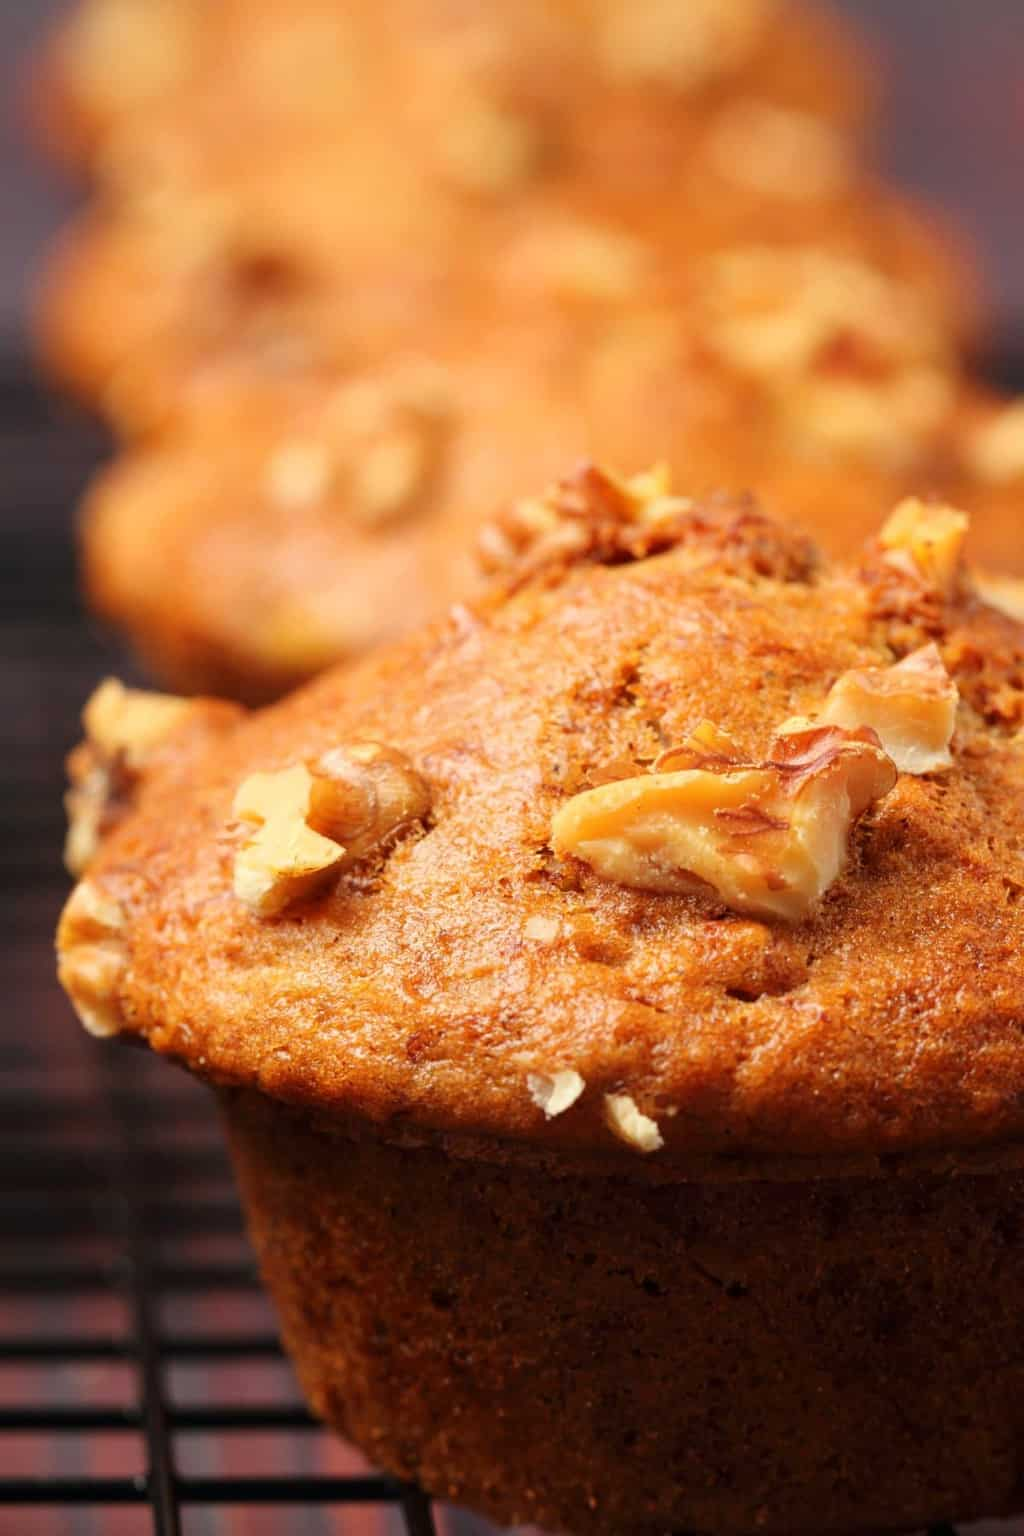 Vegan banana muffins on a wire cooling rack.